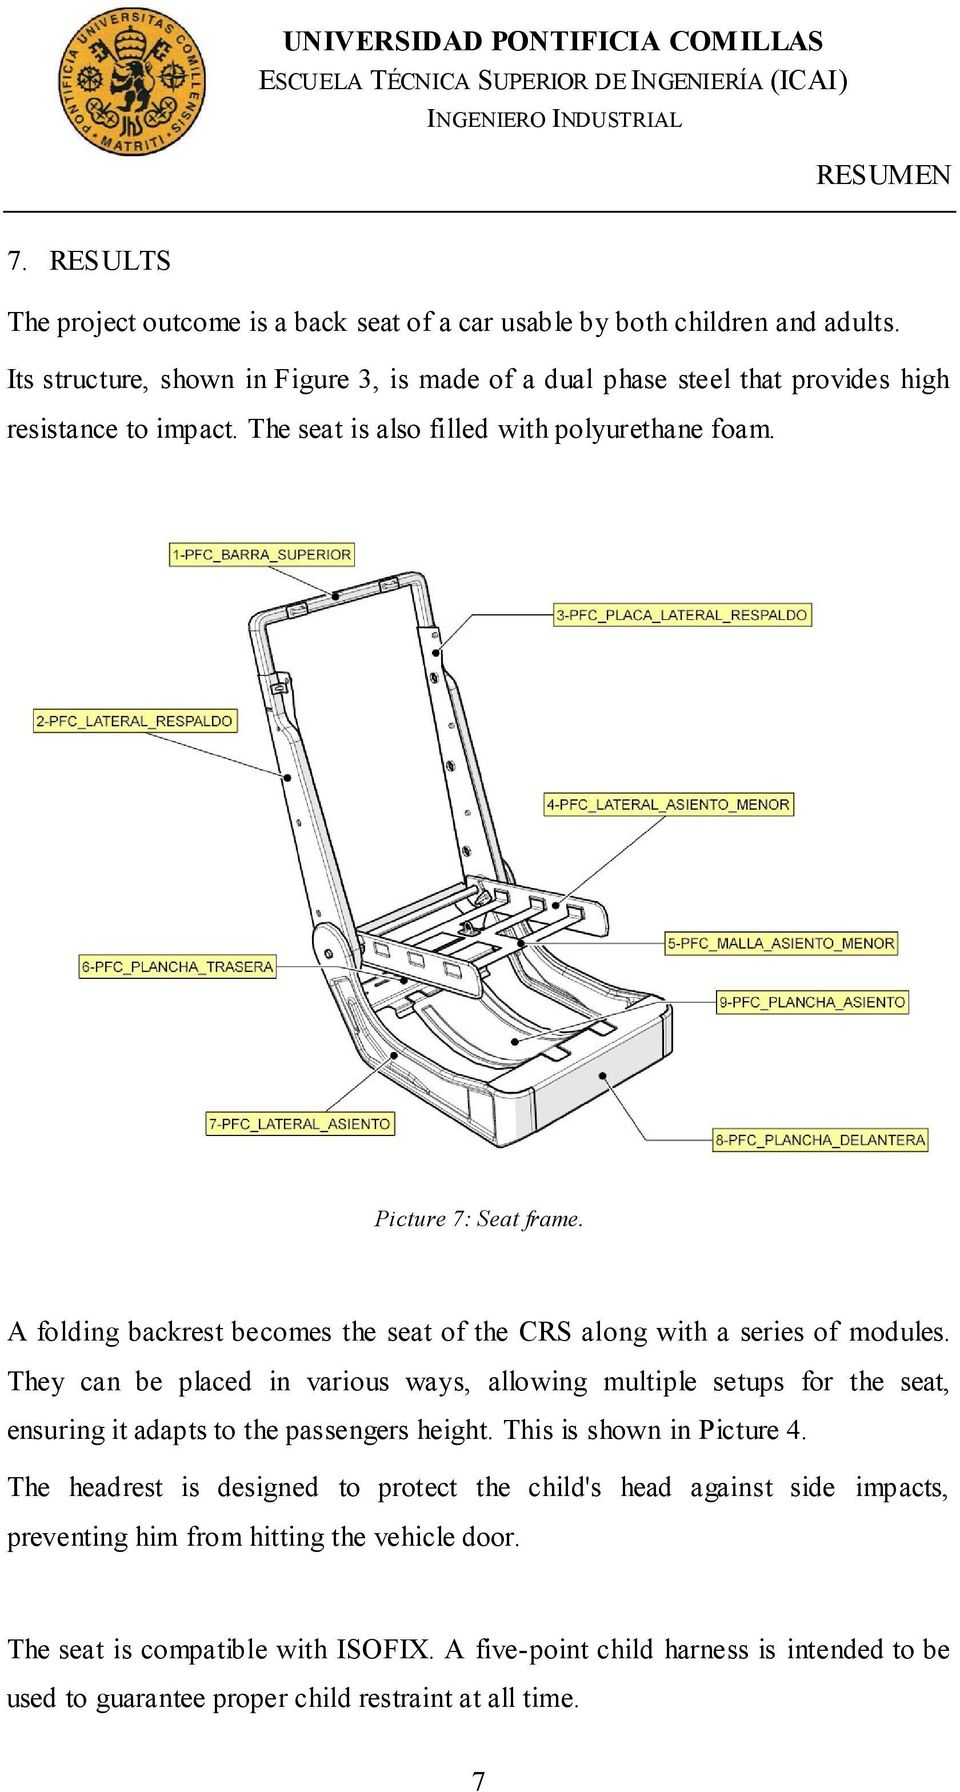 A folding backrest becomes the seat of the CRS along with a series of modules. They can be placed in various ways, allowing multiple setups for the seat, ensuring it adapts to the passengers height.